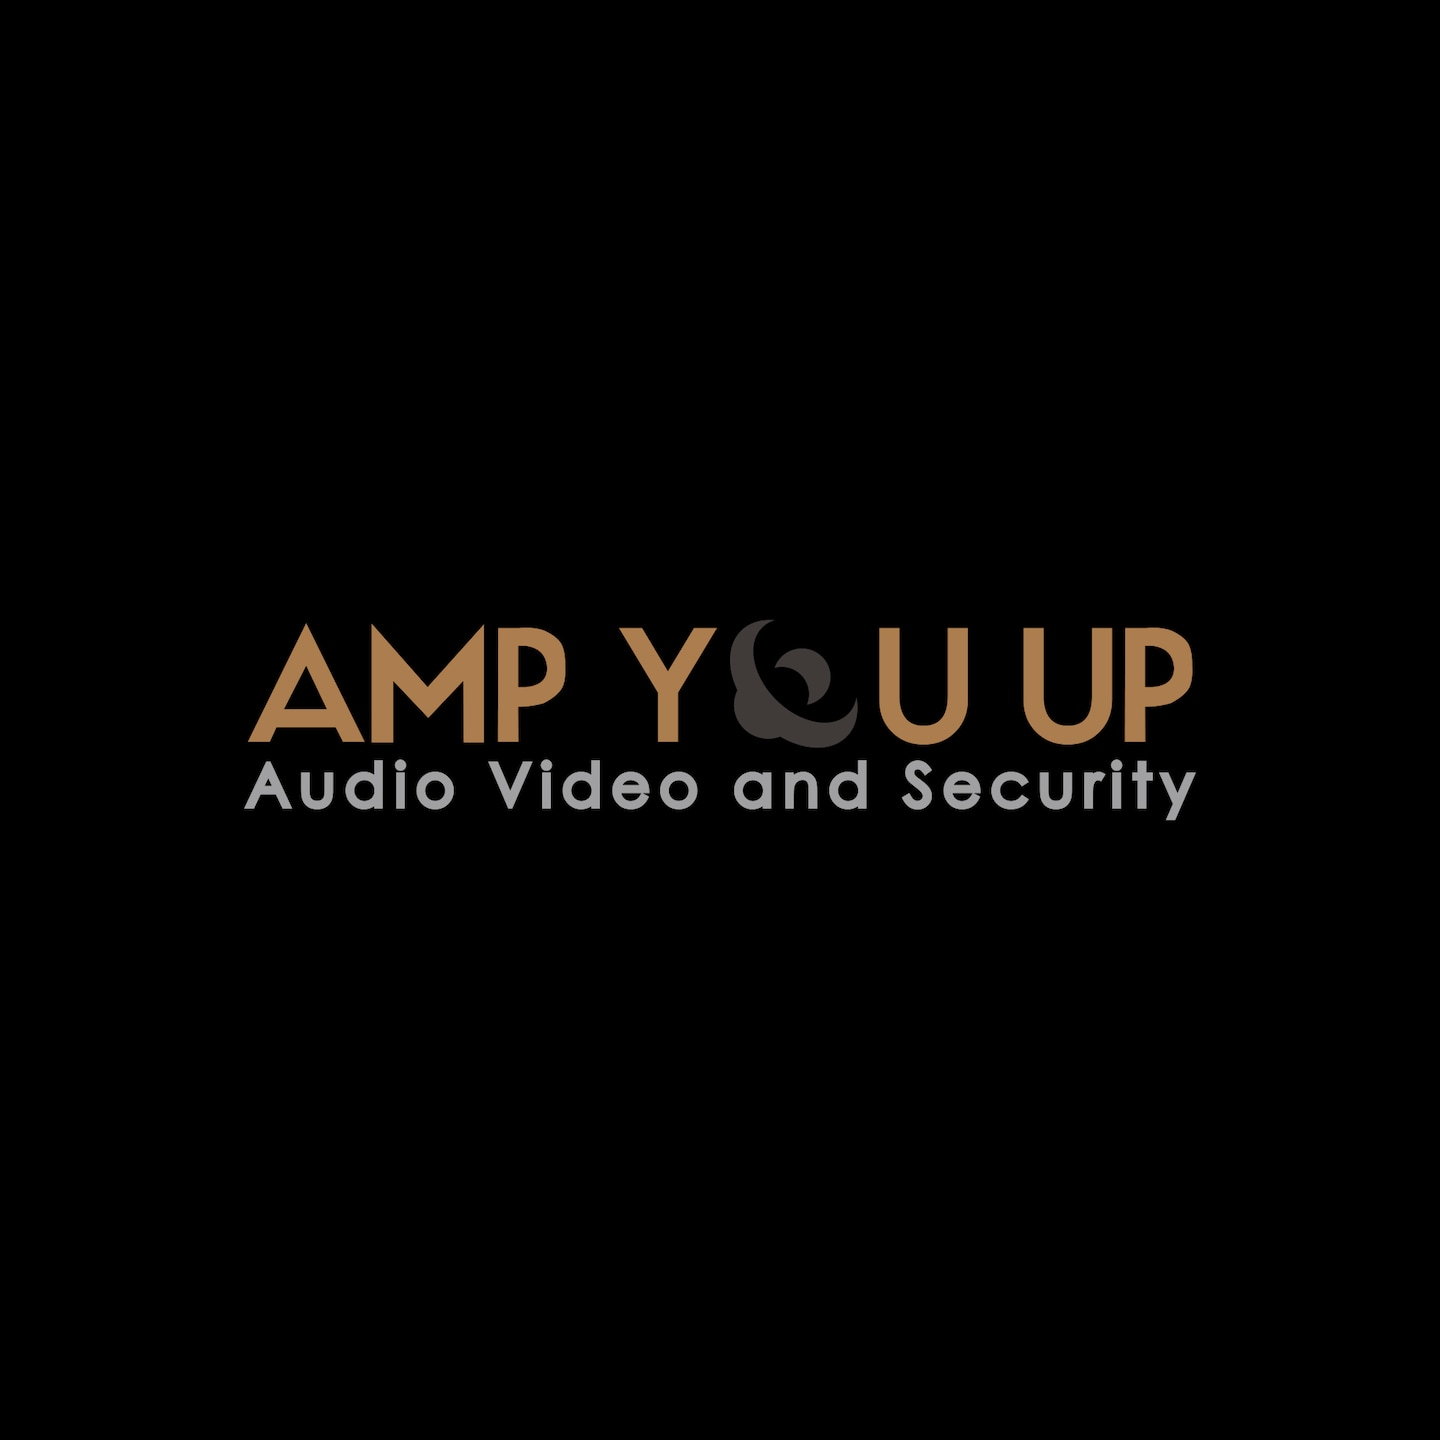 Amp You Up AV and Security